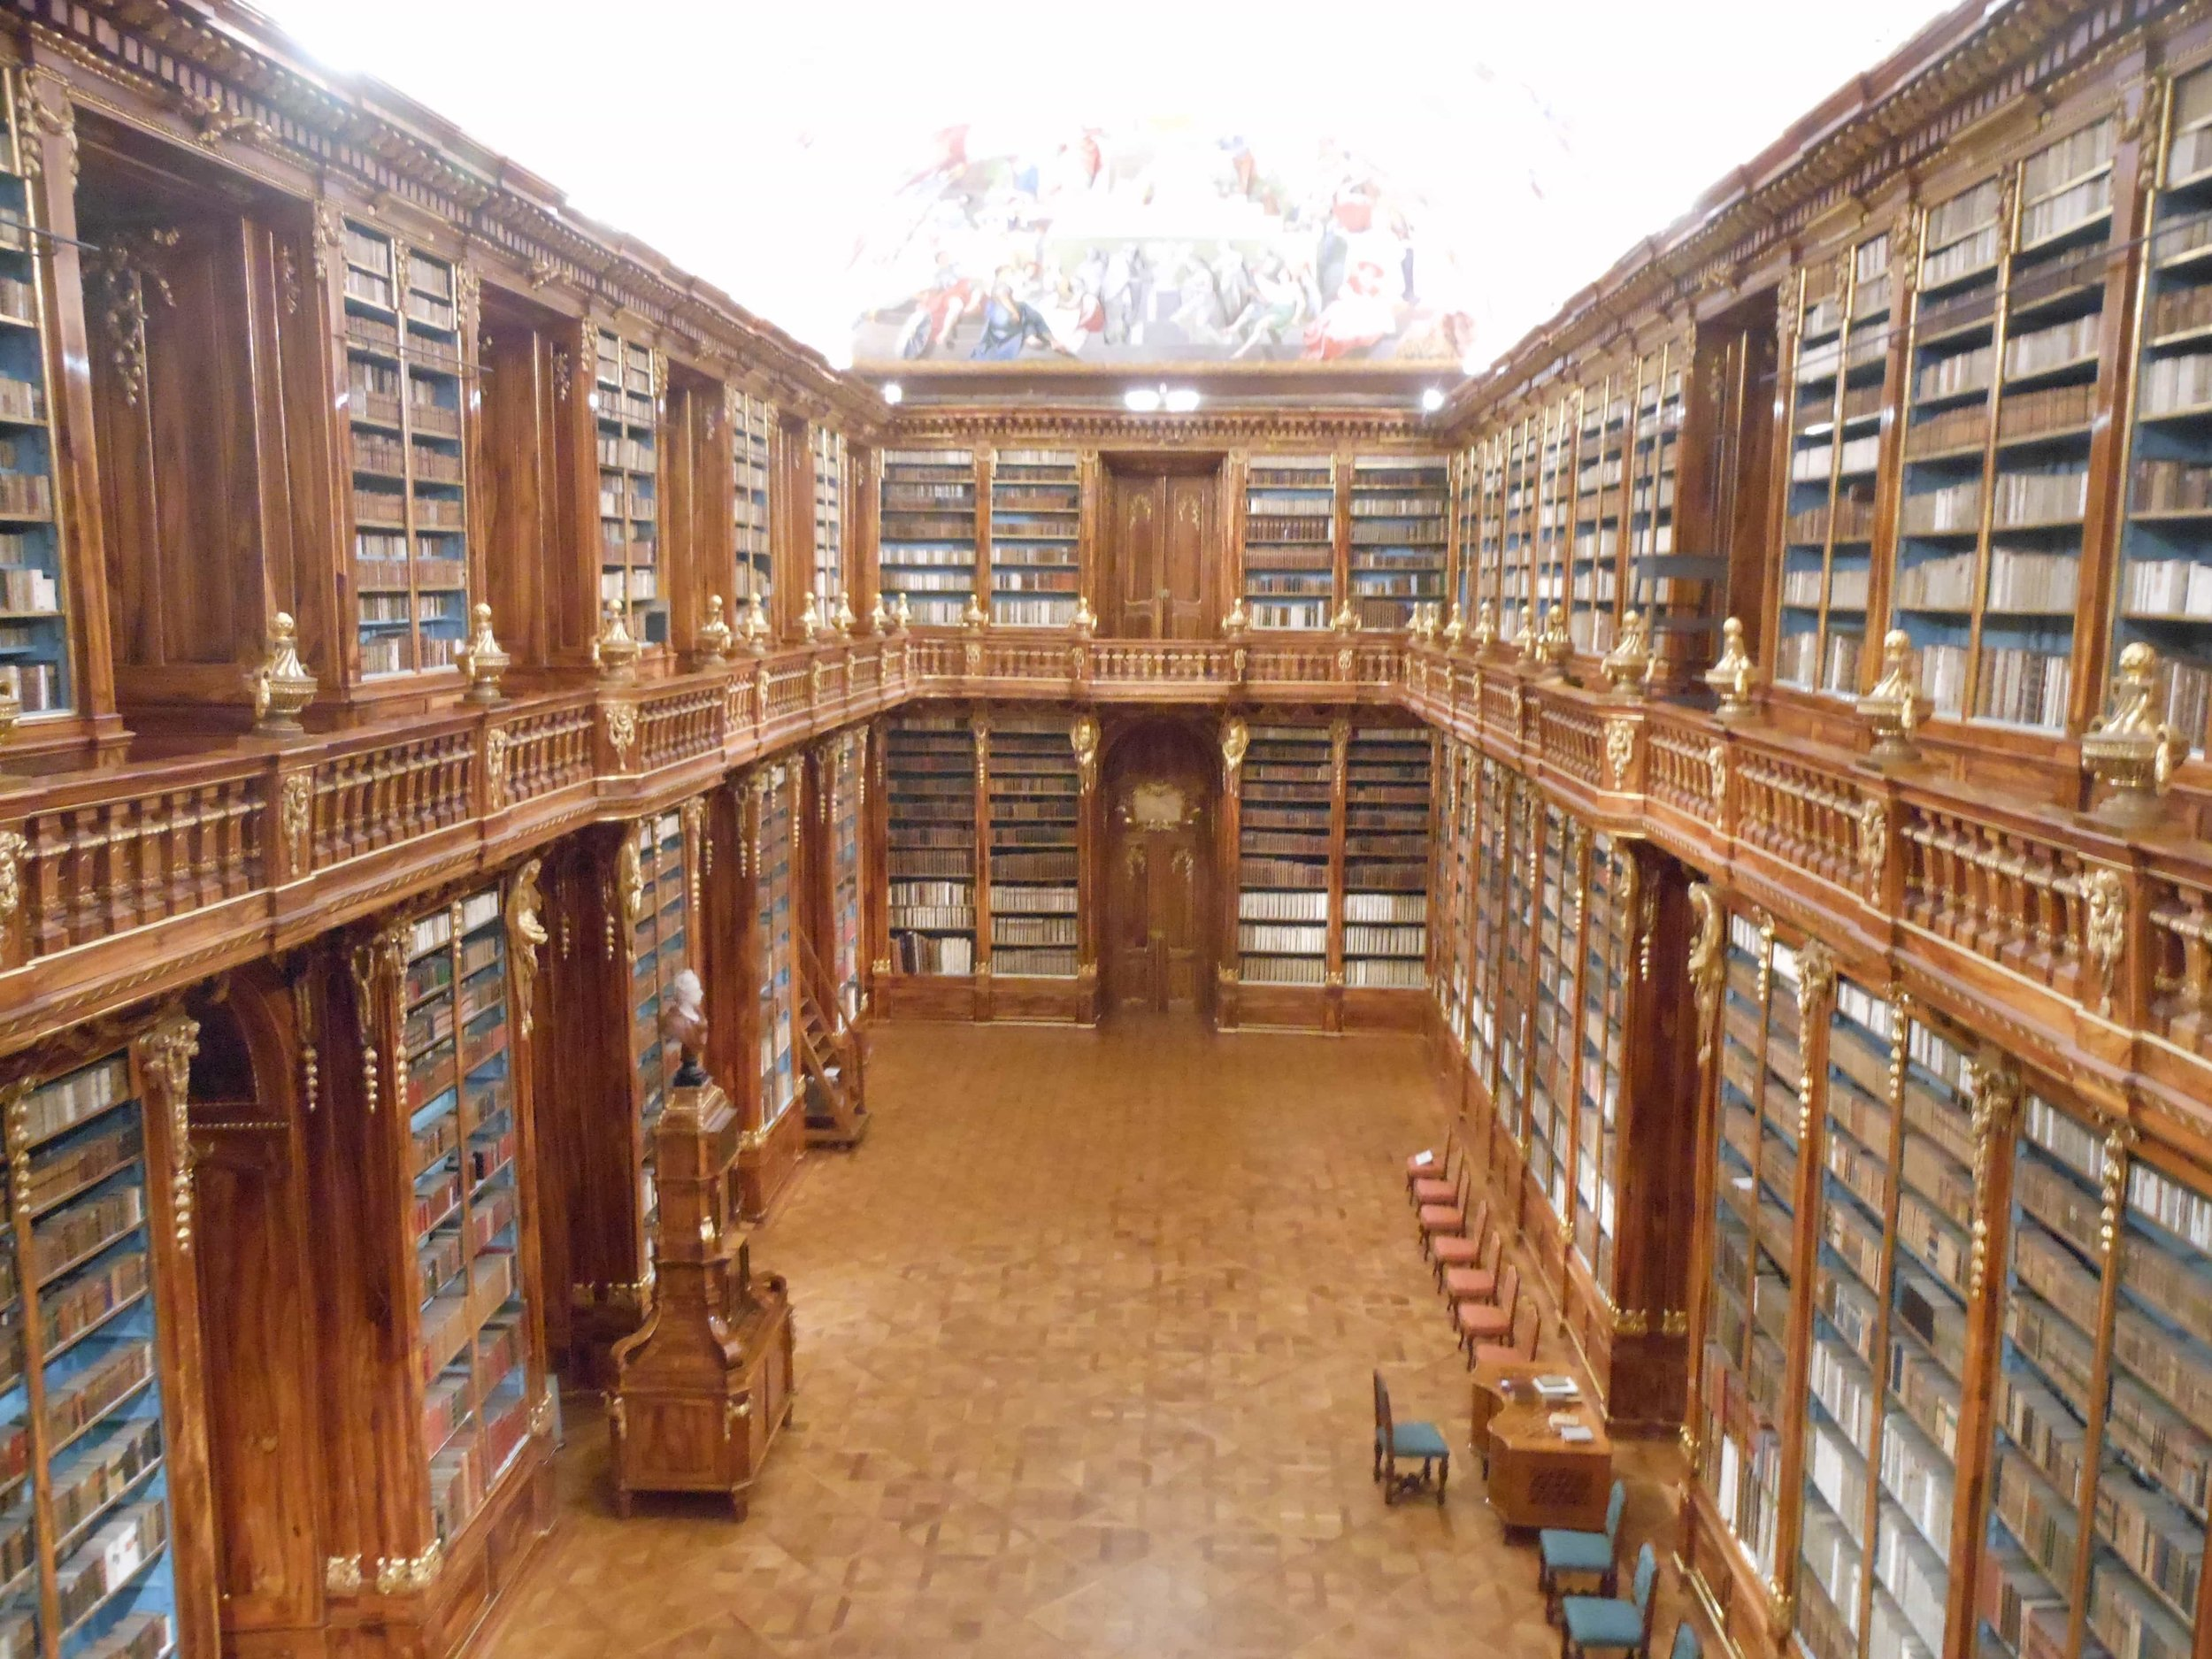 clementinumlibrary